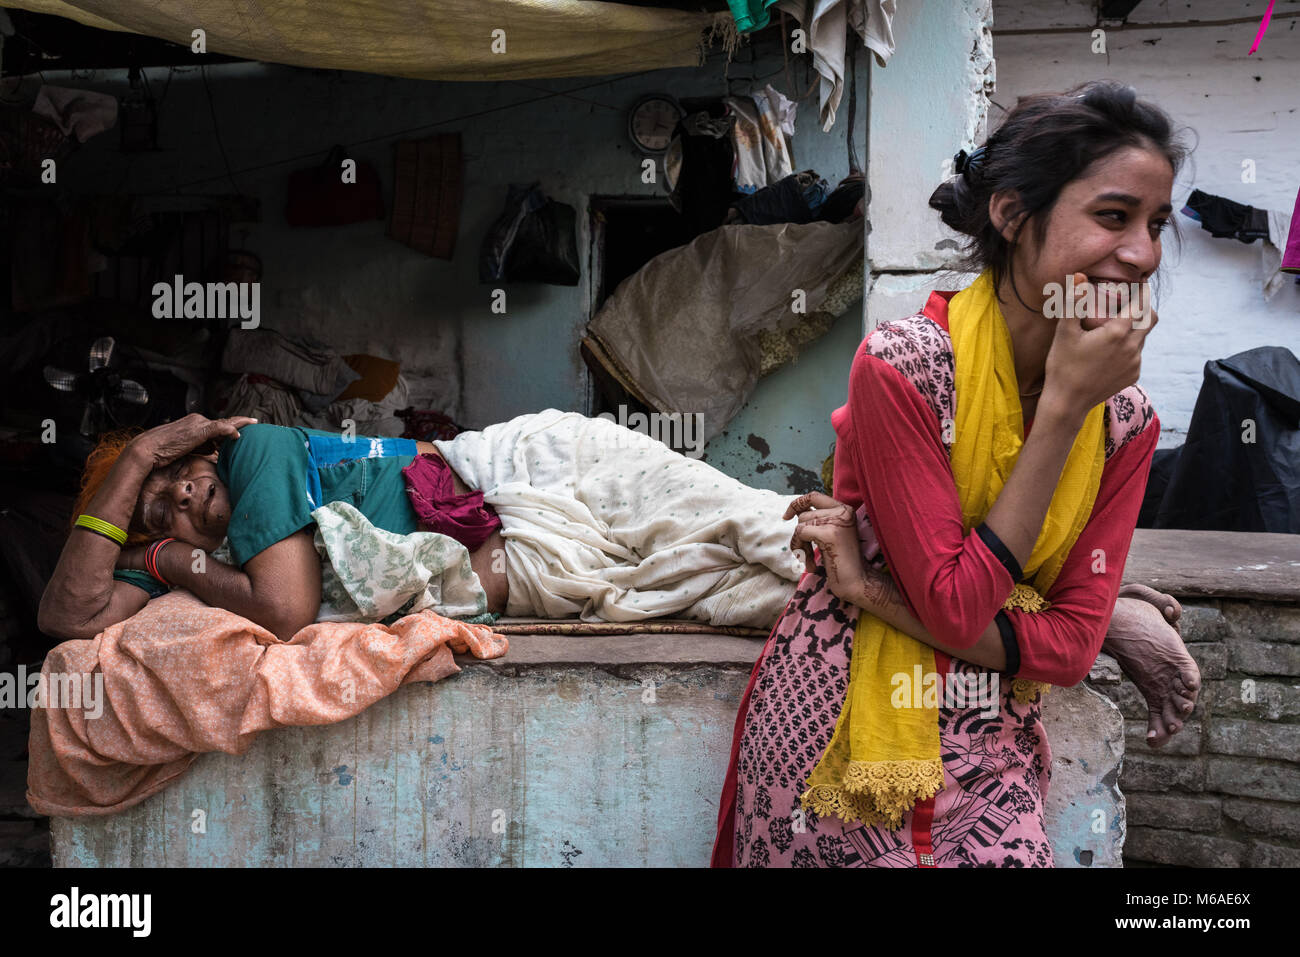 An ailing matriarch and her giggling family member in a courtyard in Varanasi, India. - Stock Image